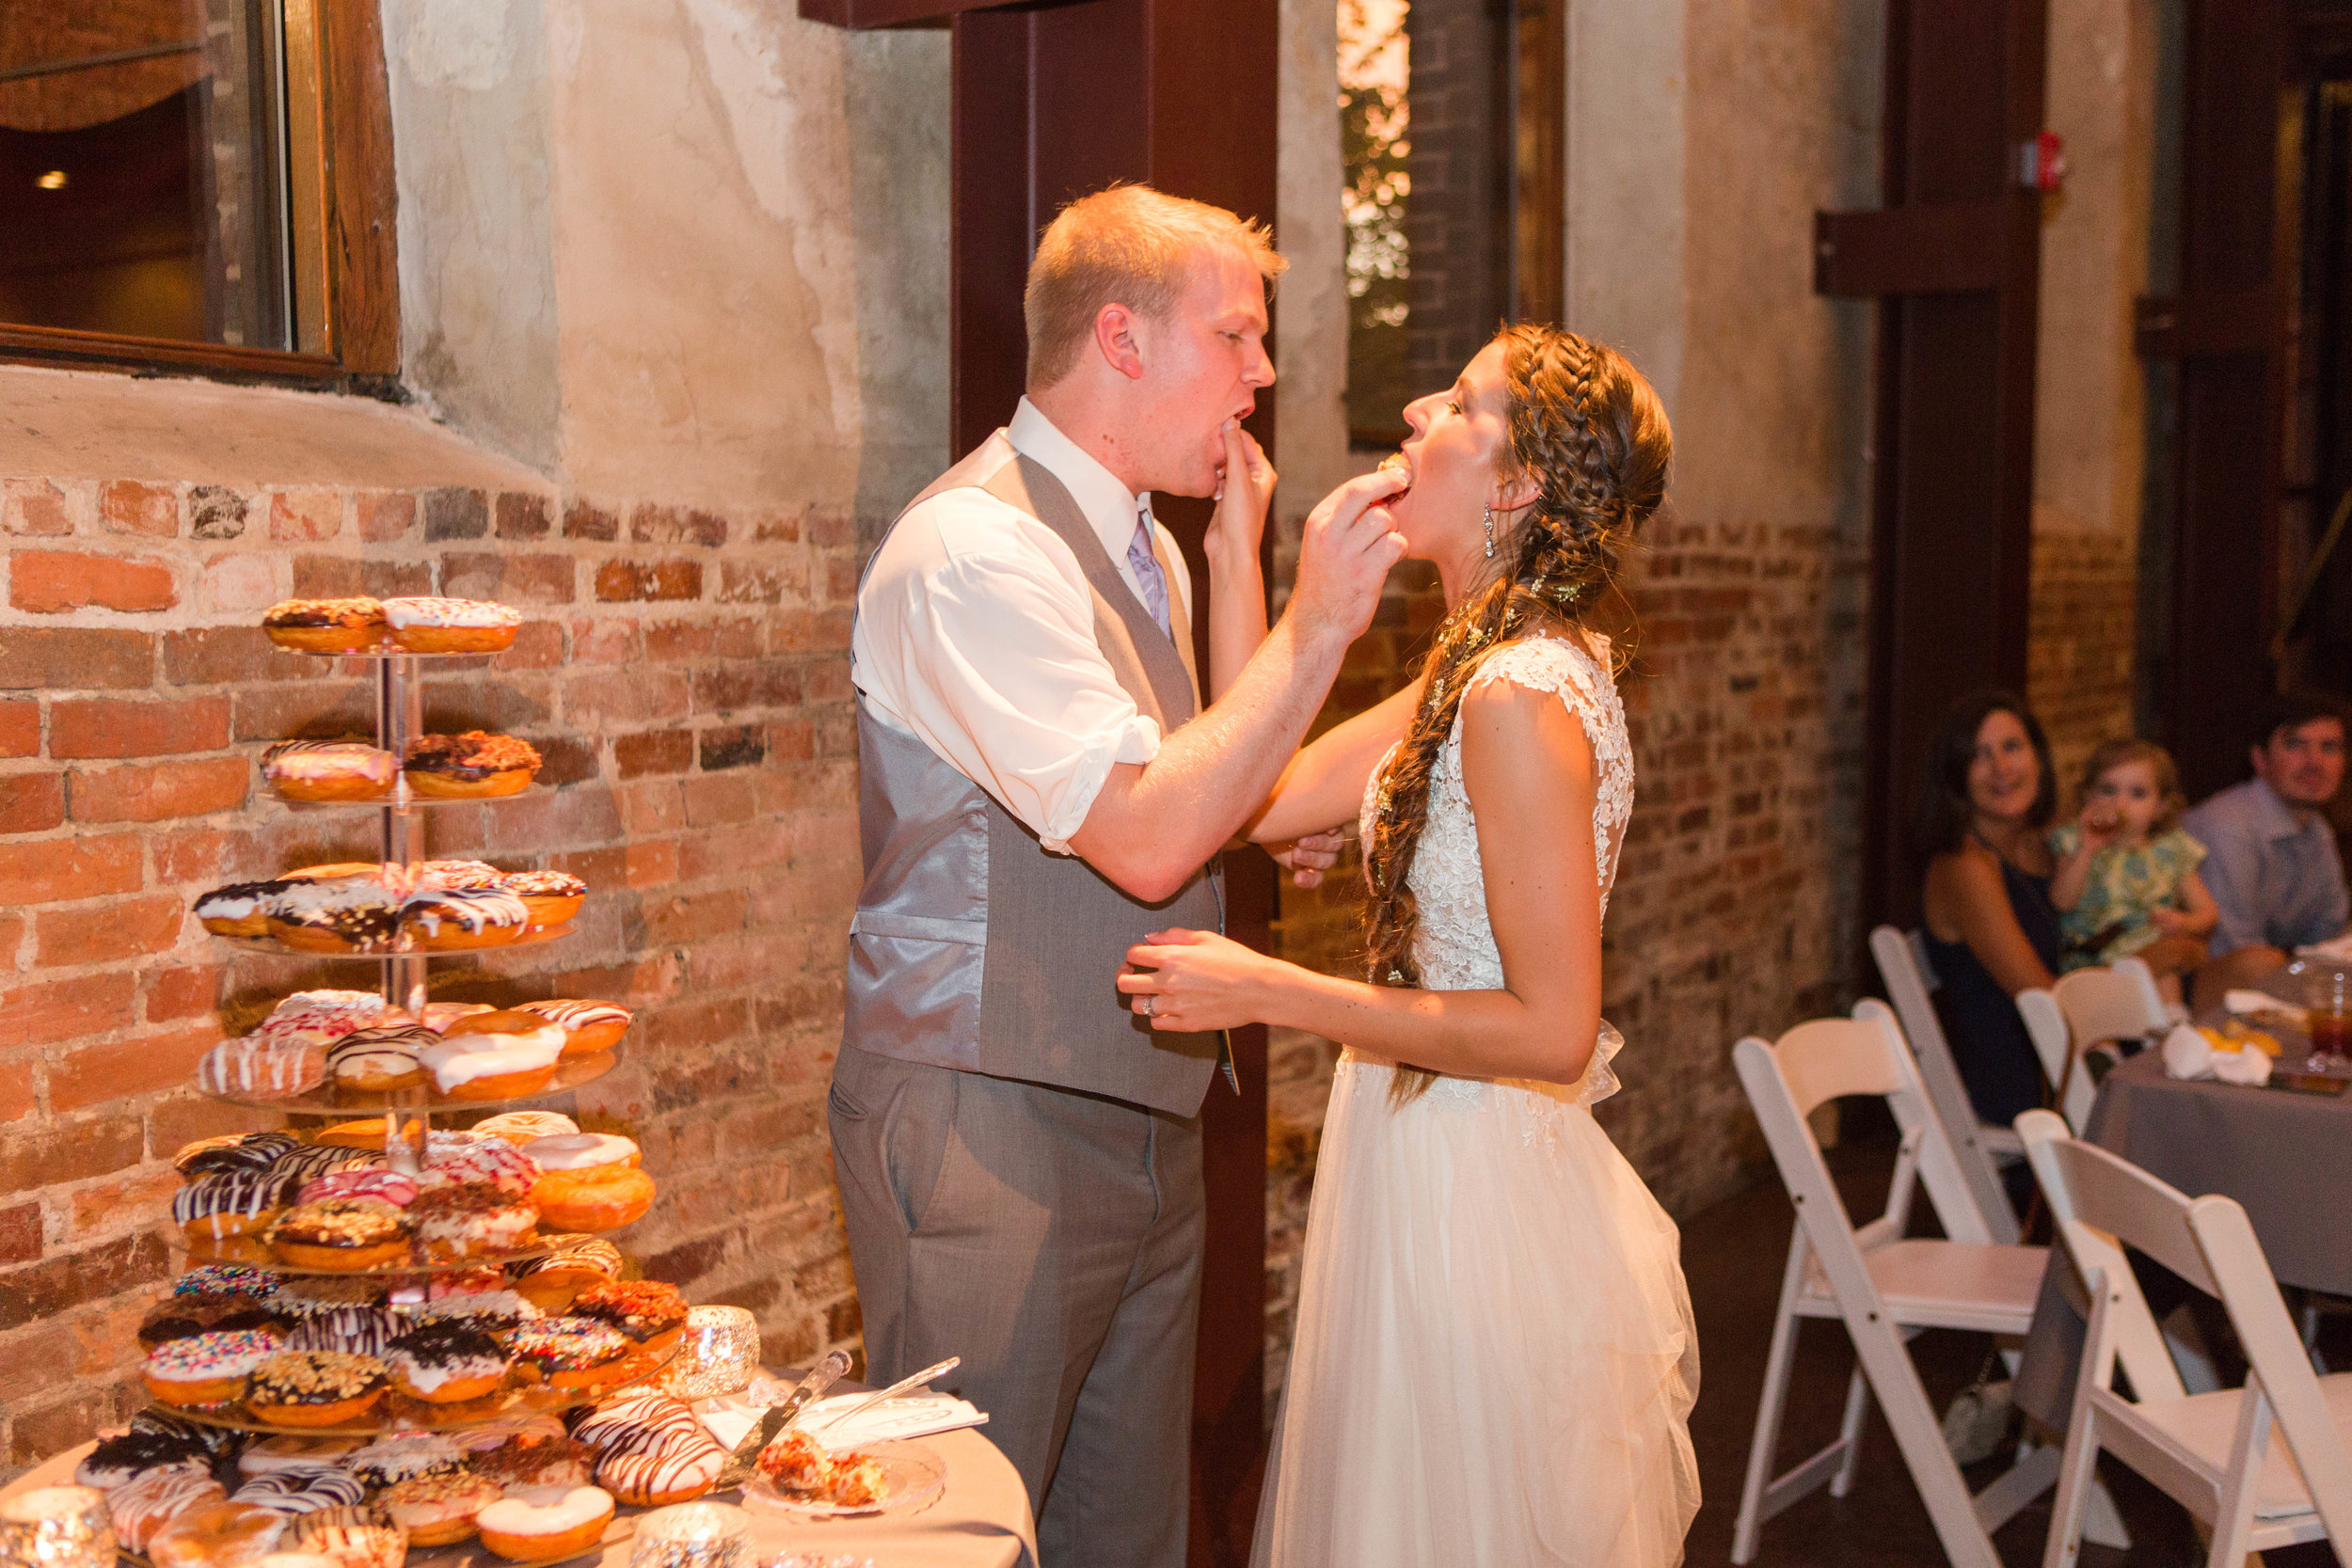 Instead of cake, they chose to serve Duck Donuts!! Don't they look delicious?